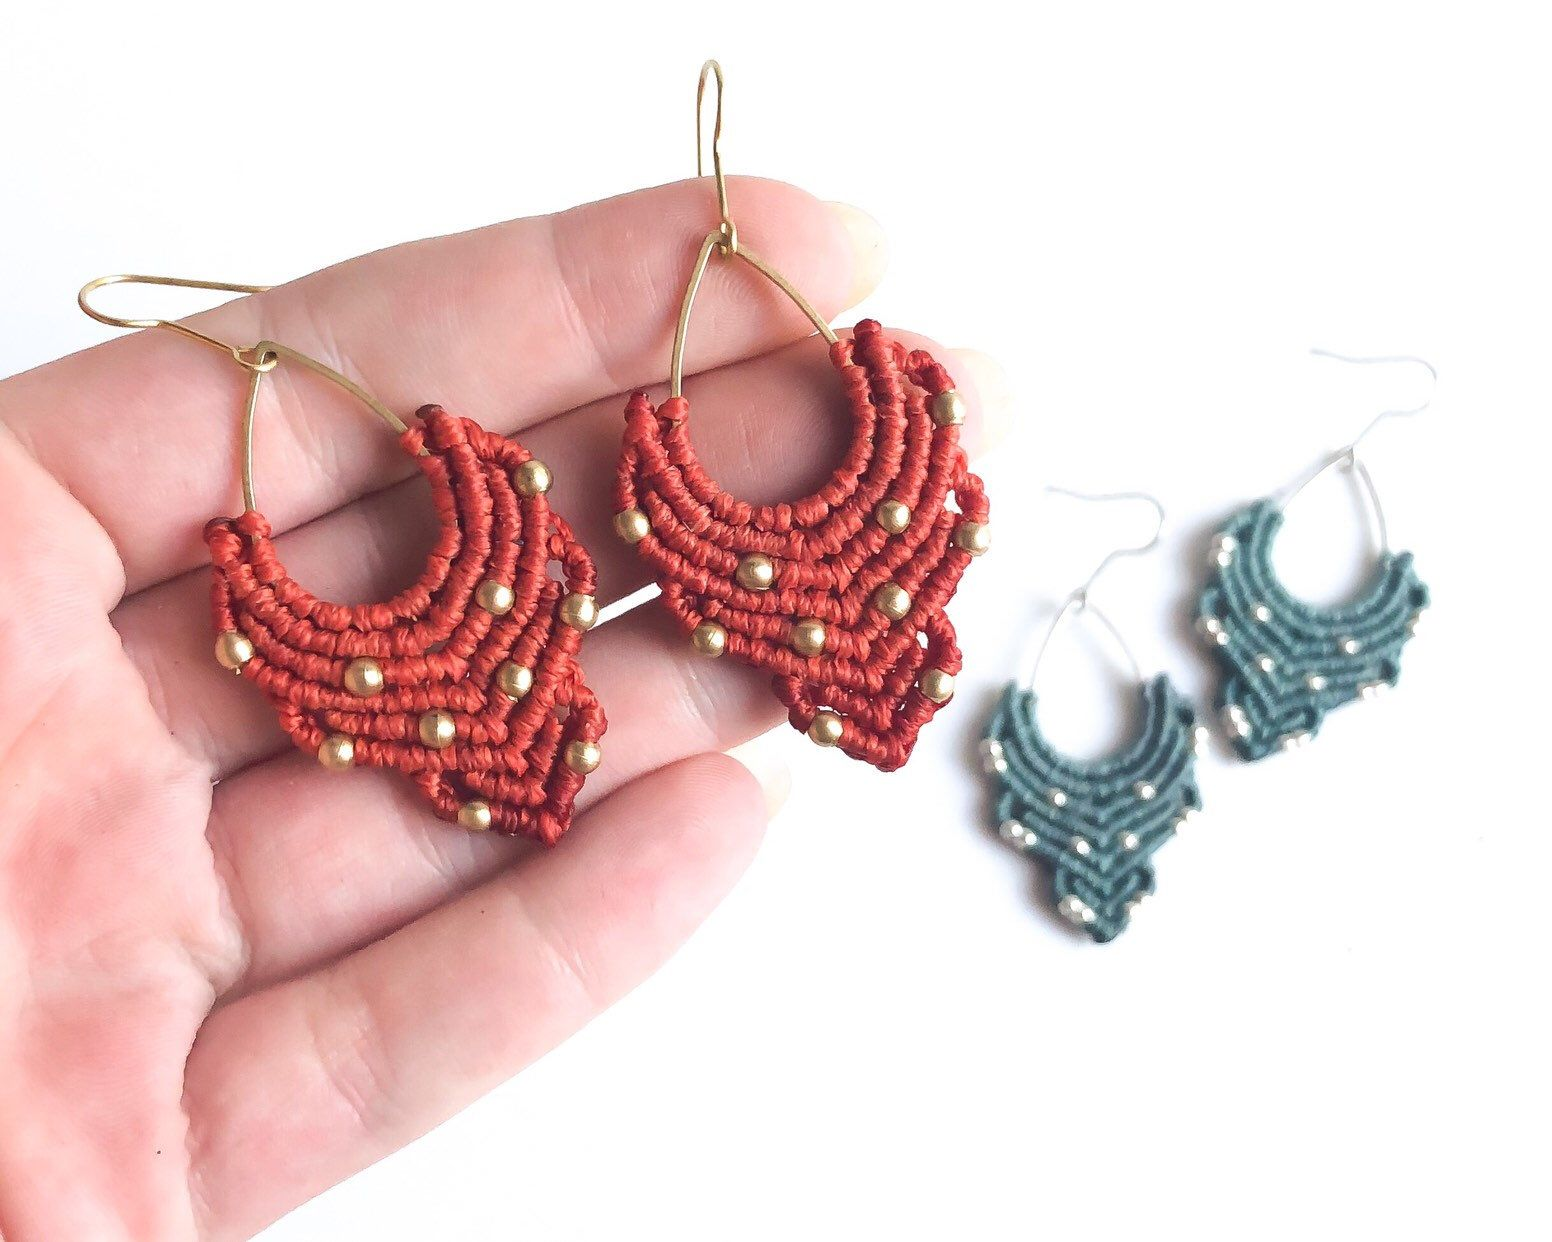 Earrings,Moroccan,Silver,Dangle,hoops,drop,handmade,jewelry,Boho,sets,birthday gifts for sister,for girlfriend,gifts for her,free shipping